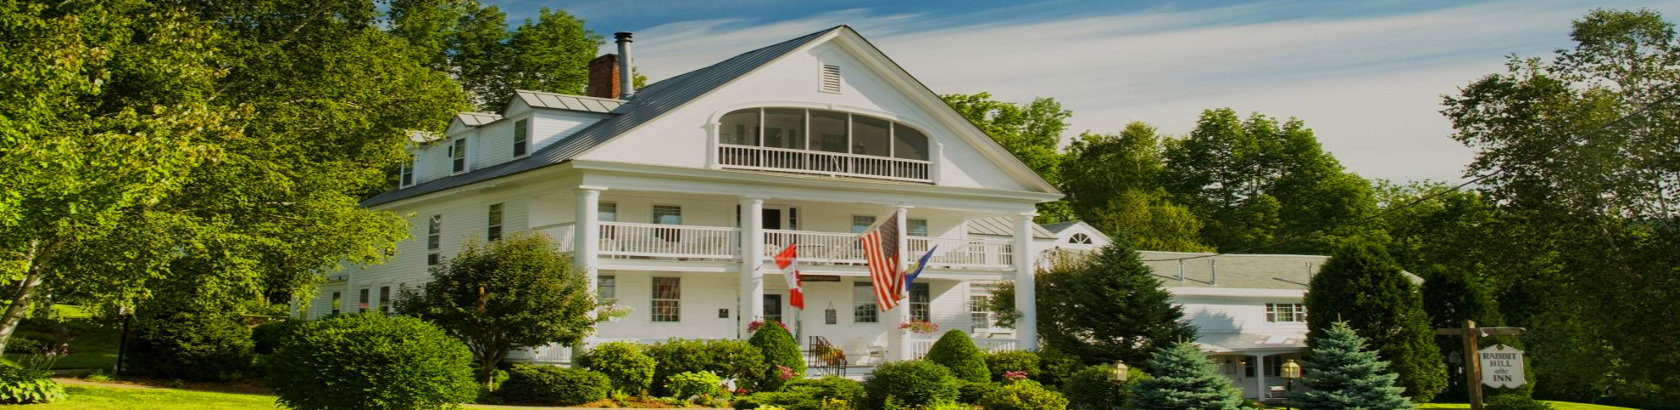 5 Star Bed & Breakfast Inns